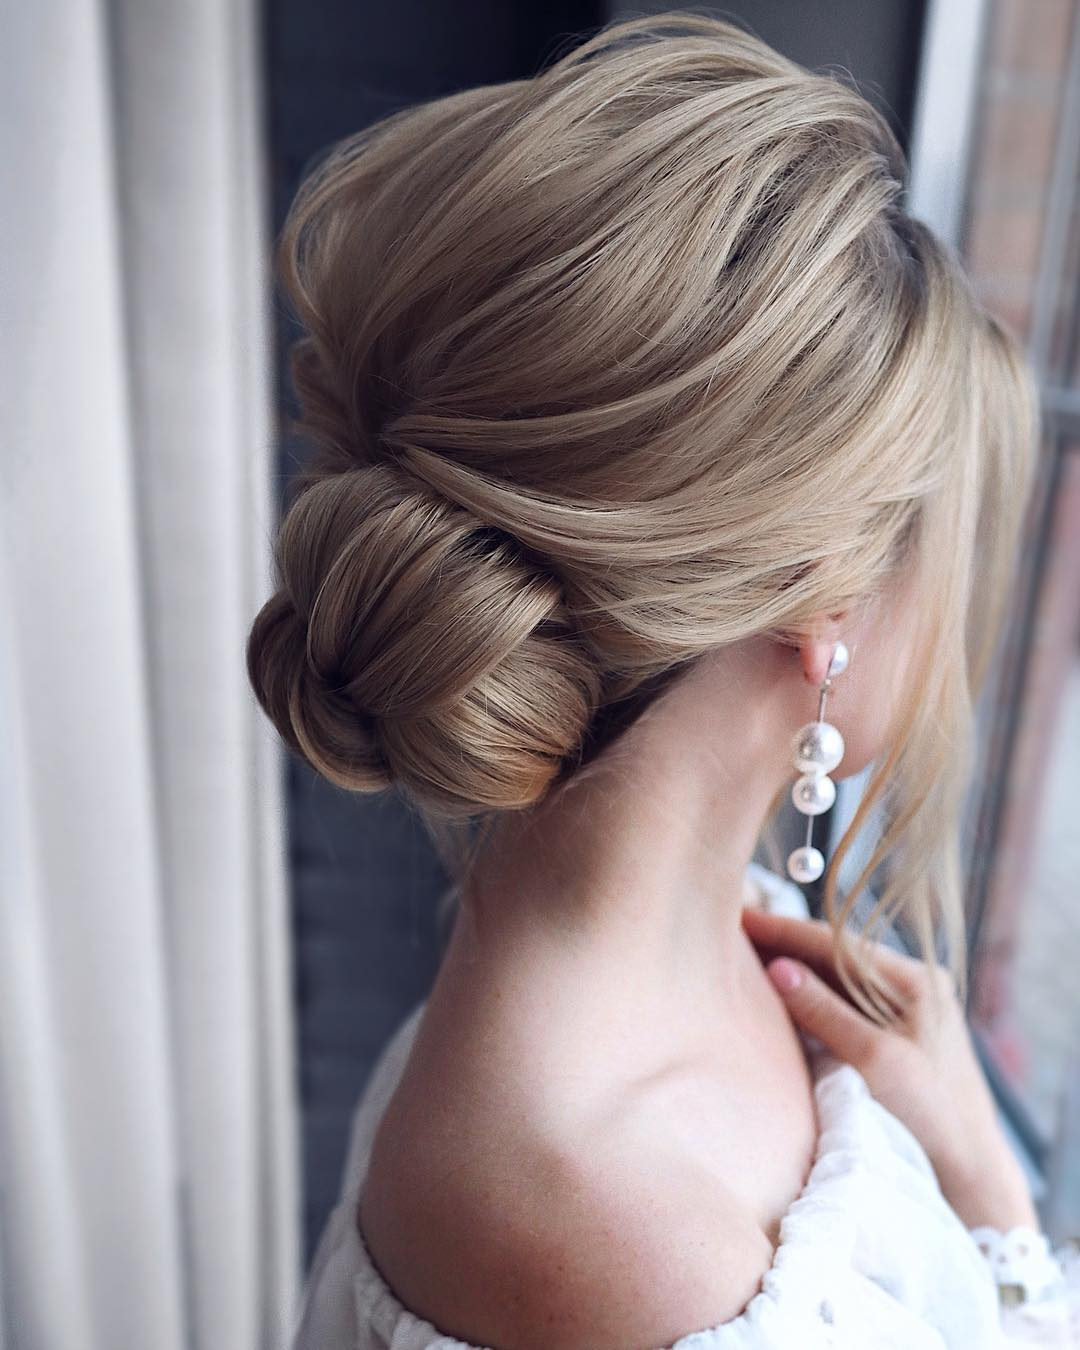 10 Updos For Medium Length Hair